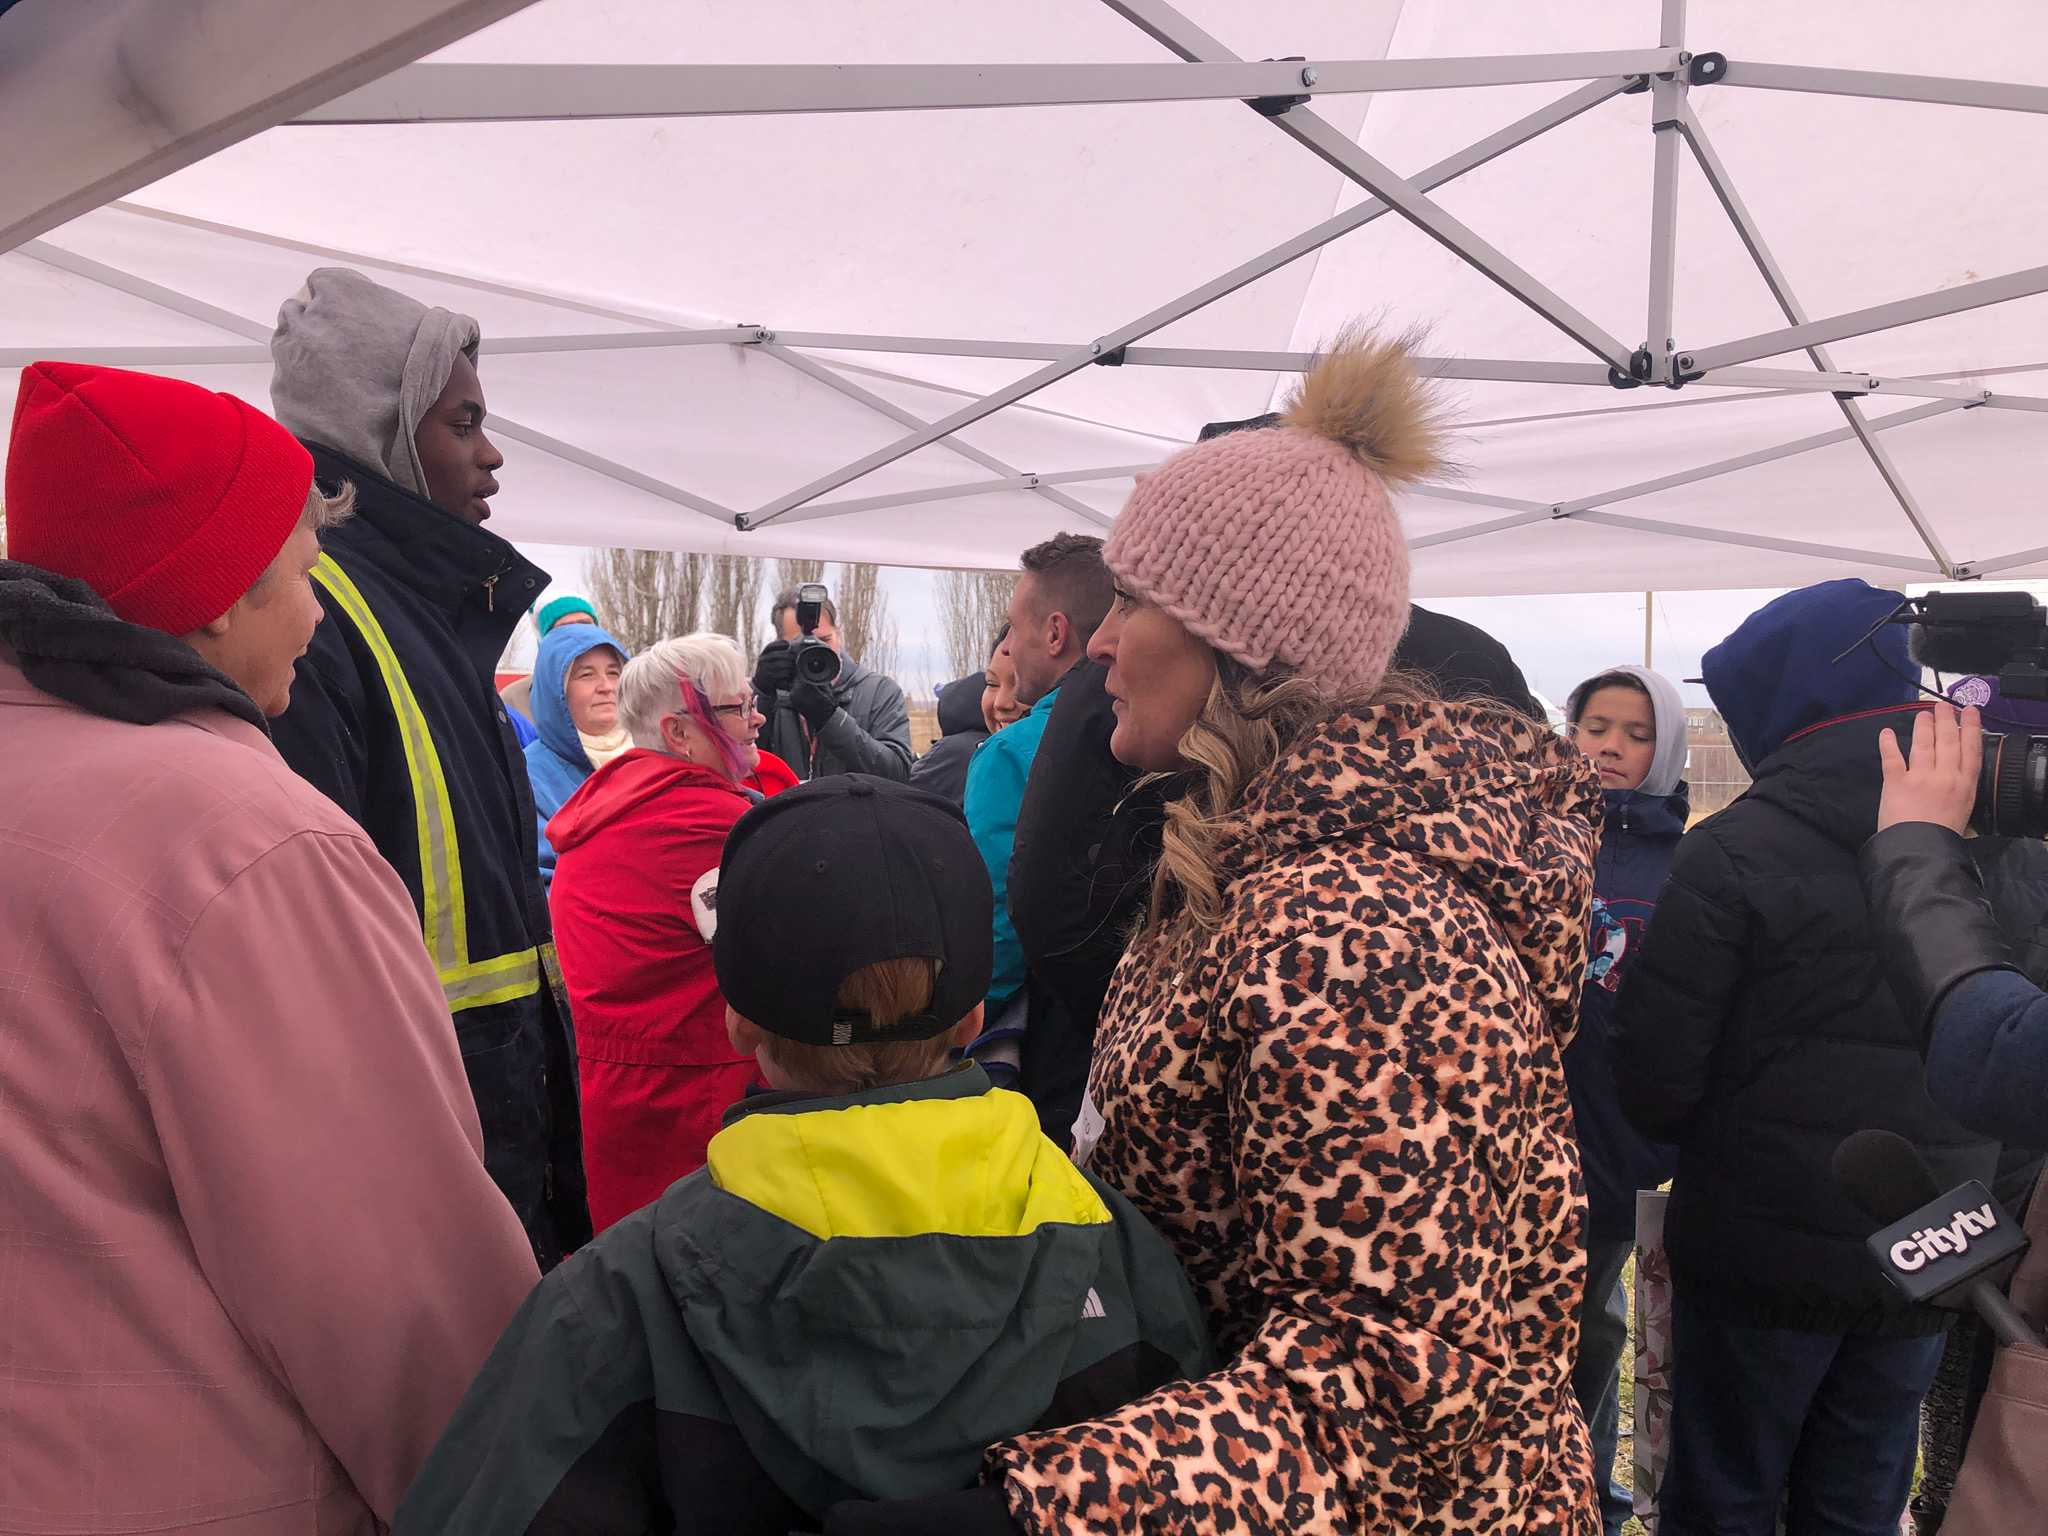 MORE THAN 2-HUNDRED TURN OUT FOR A BLOCK PARTY TO DENOUNCE RACISM IN ST. ALBERT